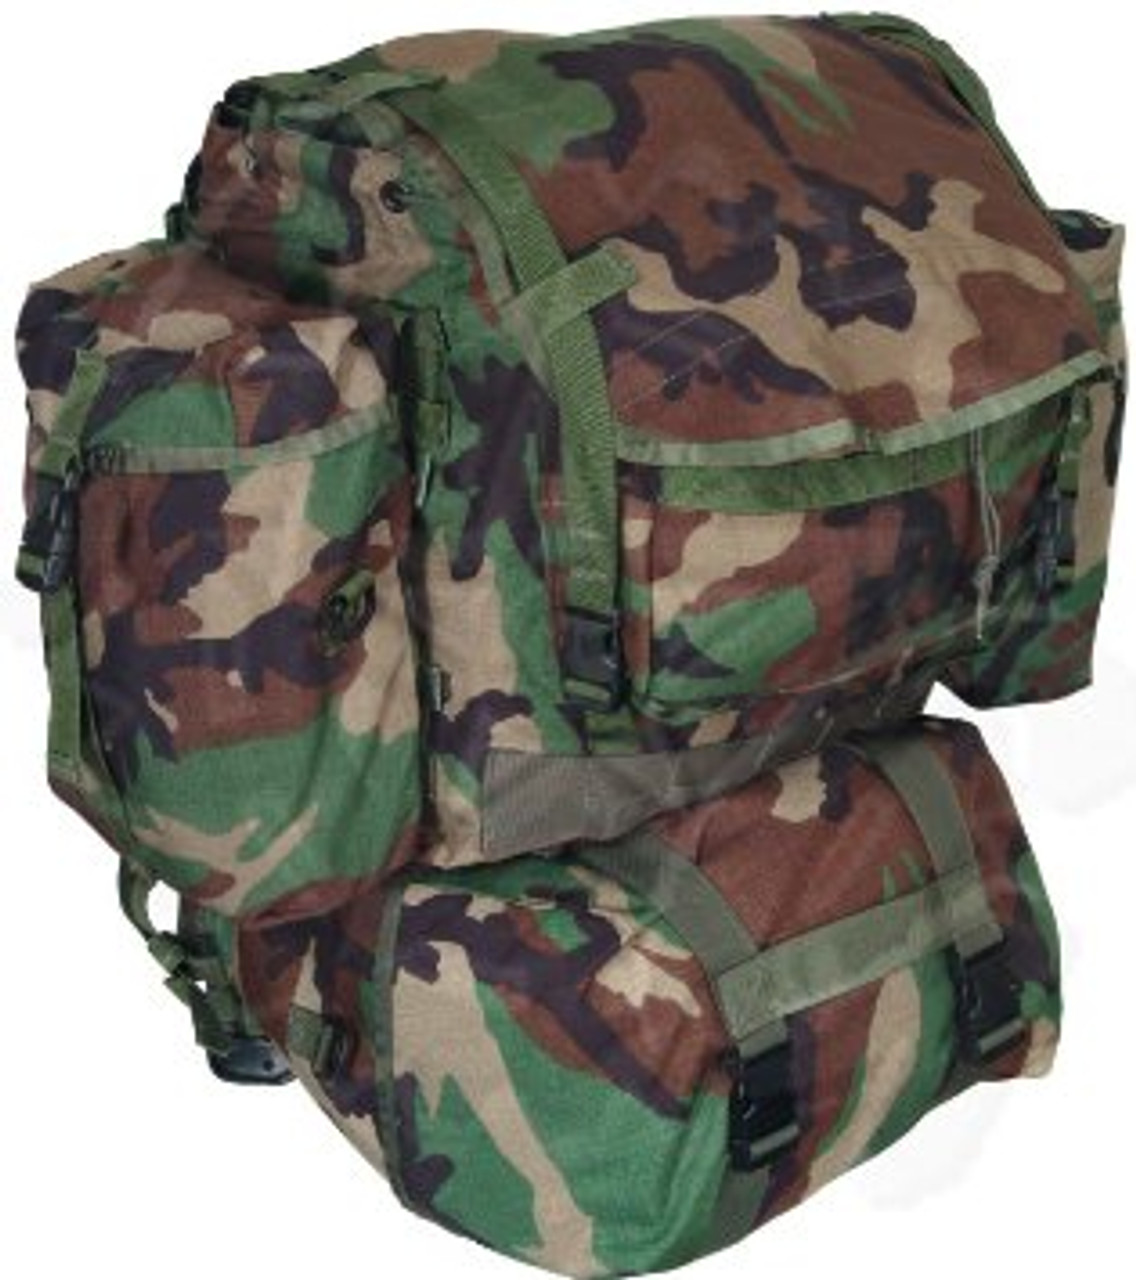 ARMY UTILITY POUCH LARGE MULTI PURPOSE POCKET MOLLE SYSTEM MODULAR WOODLAND CAMO